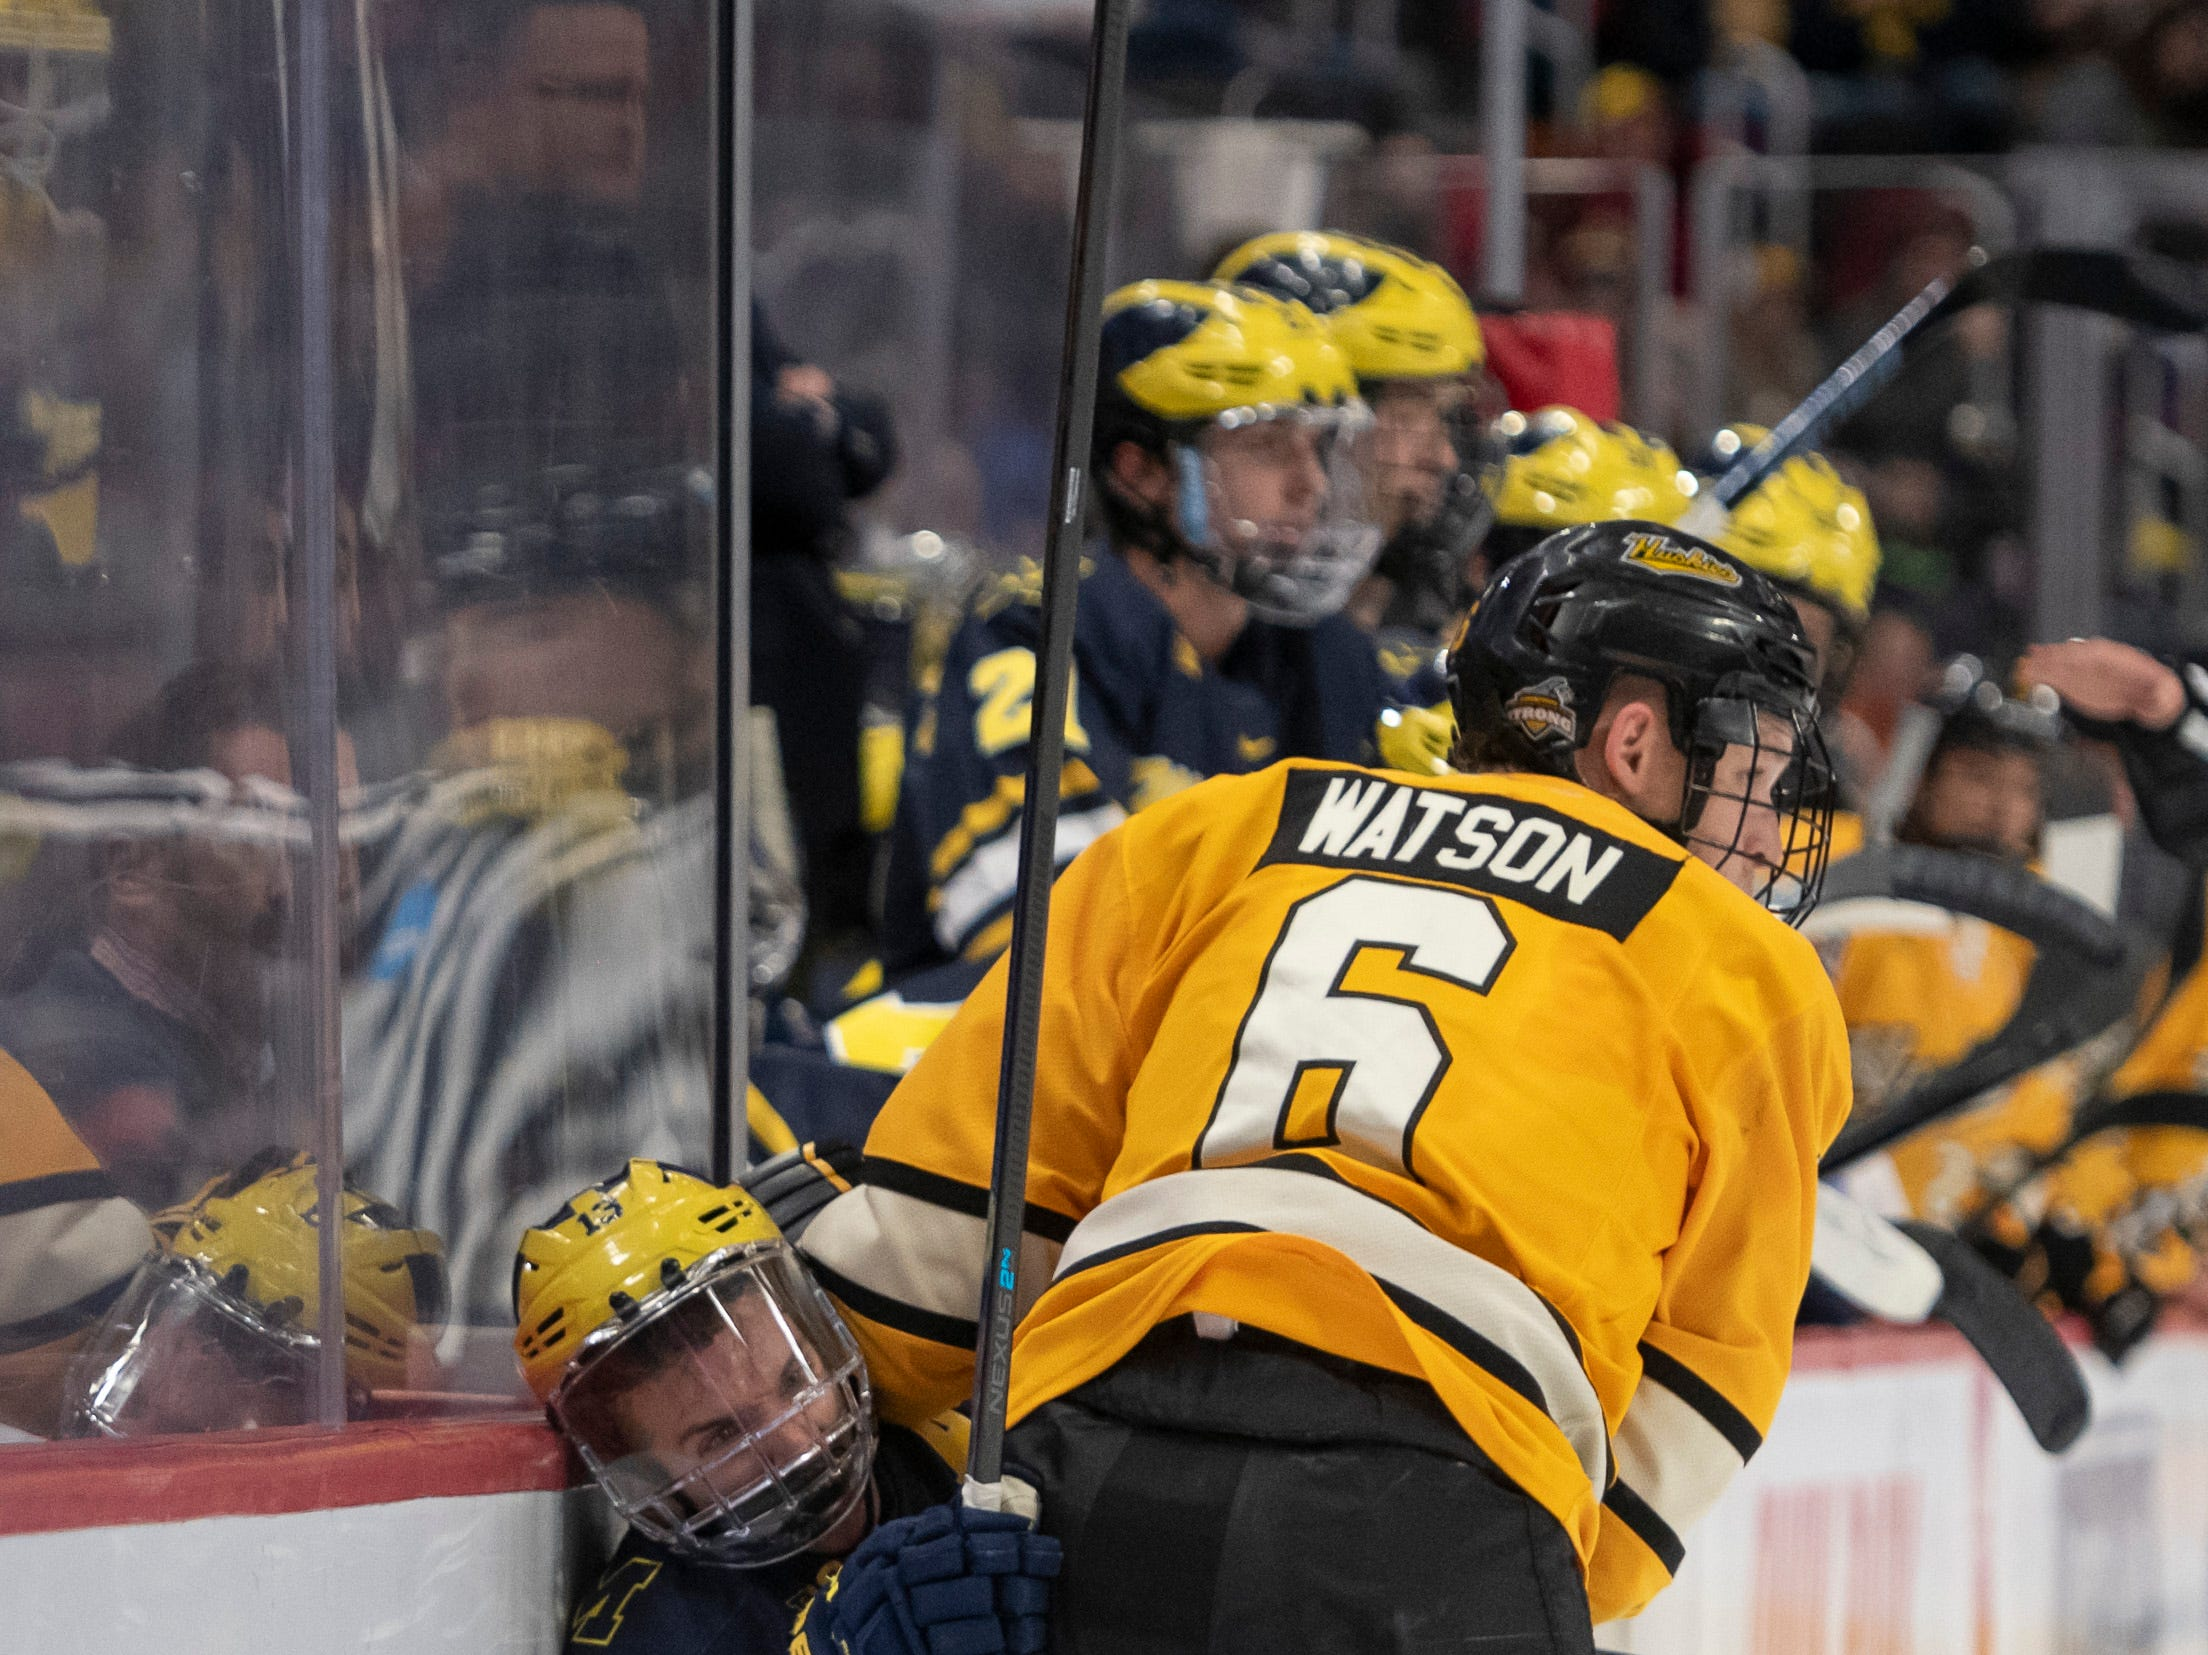 Michigan forward Jake Slaker is checked into the boards by Michigan Tech defenseman Cooper Watson in the second period.